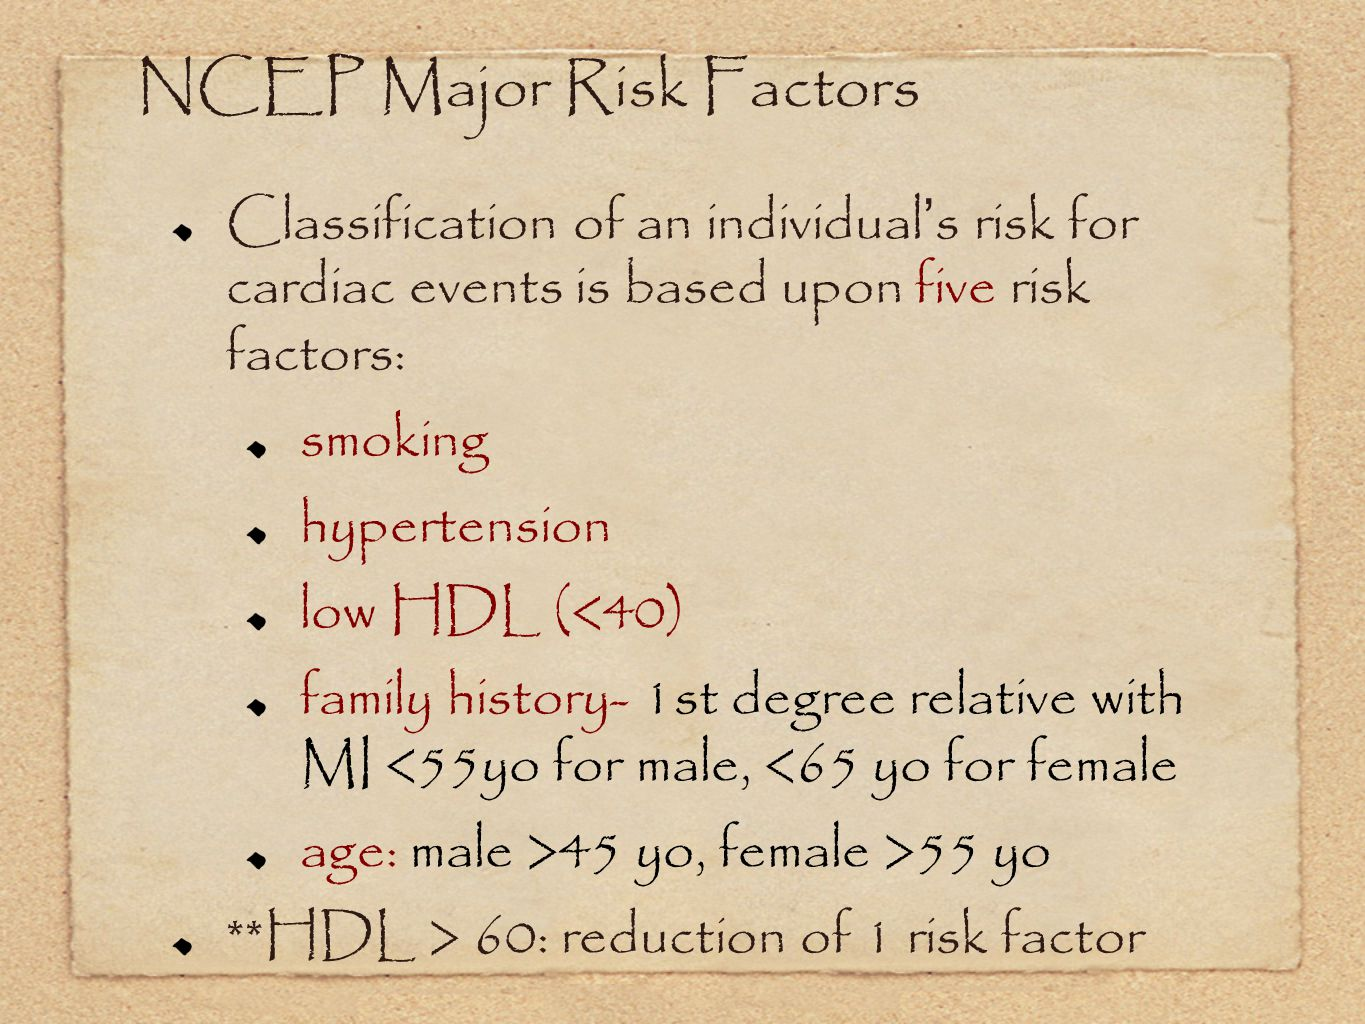 NCEP Major Risk Factors Classification of an individual s risk for cardiac events is based upon five risk factors: smoking hypertension low HDL (<40) family history- 1st degree relative with MI <55yo for male, <65 yo for female age: male >45 yo, female >55 yo **HDL > 60: reduction of 1 risk factor